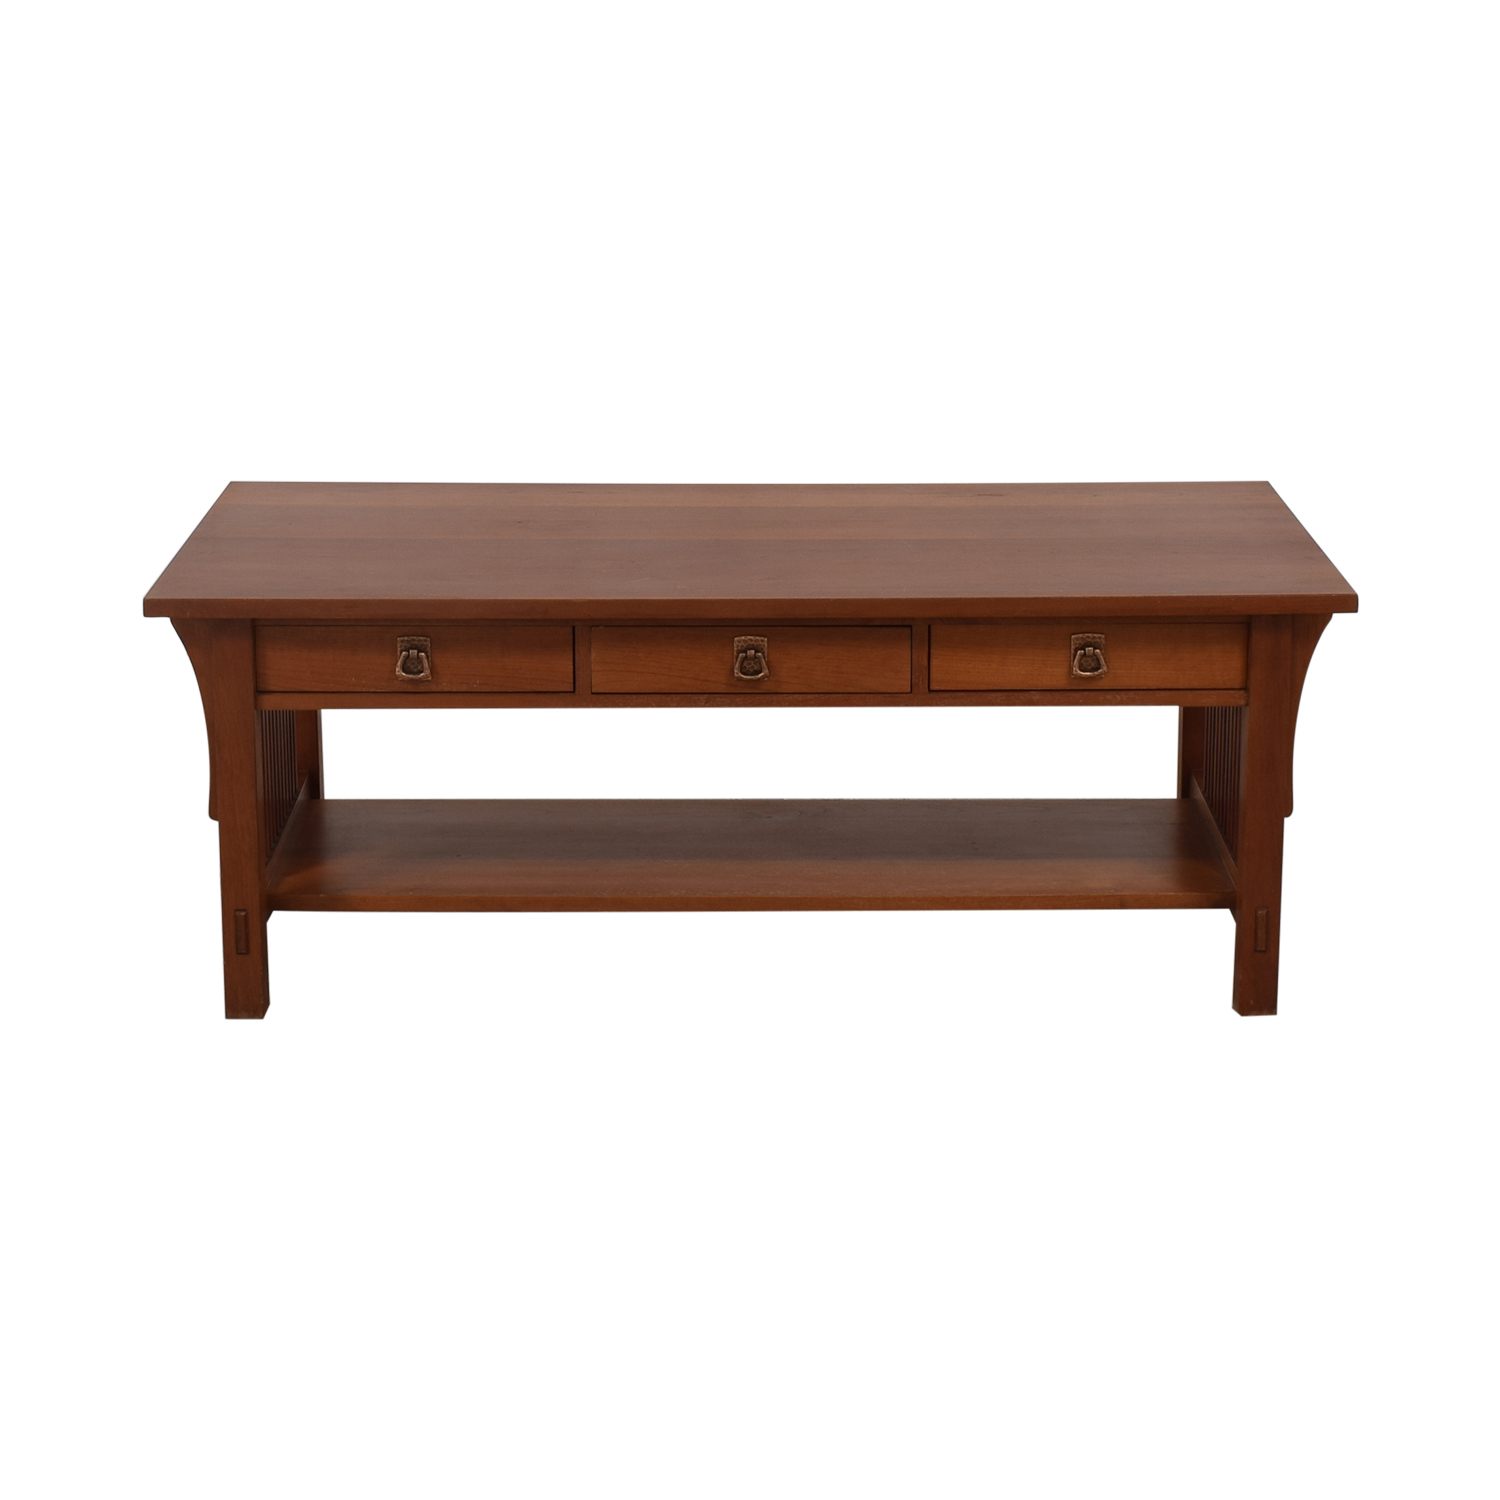 buy Stickley Coffee Table Stickley Furniture Tables